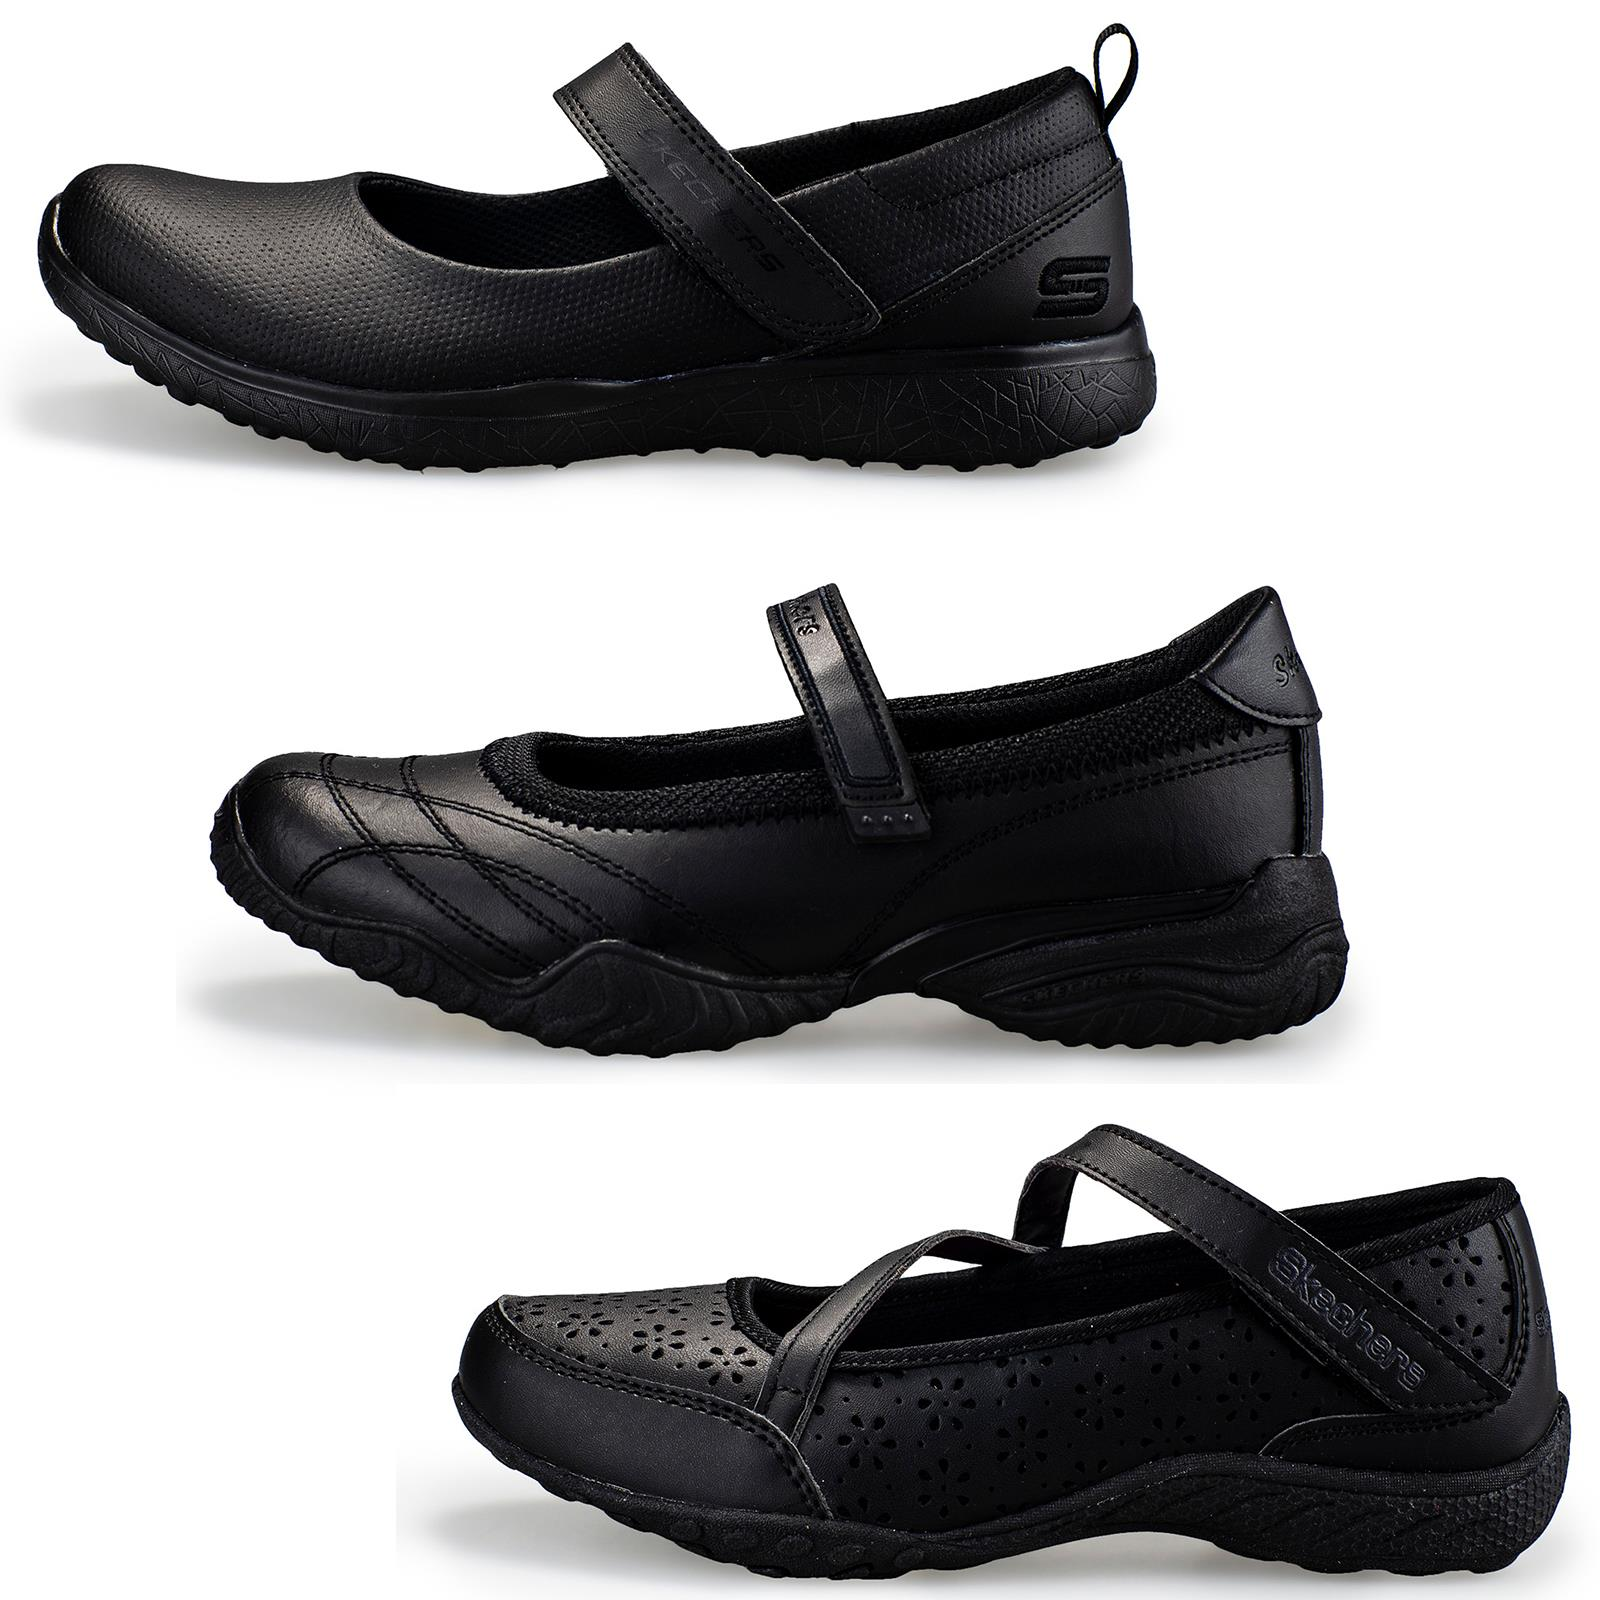 CLARKS DOLLY SHY BLACK LEATHER MARY JANES SCHOOL SHOES GIRLS UK7 10 10.5 11 12.5